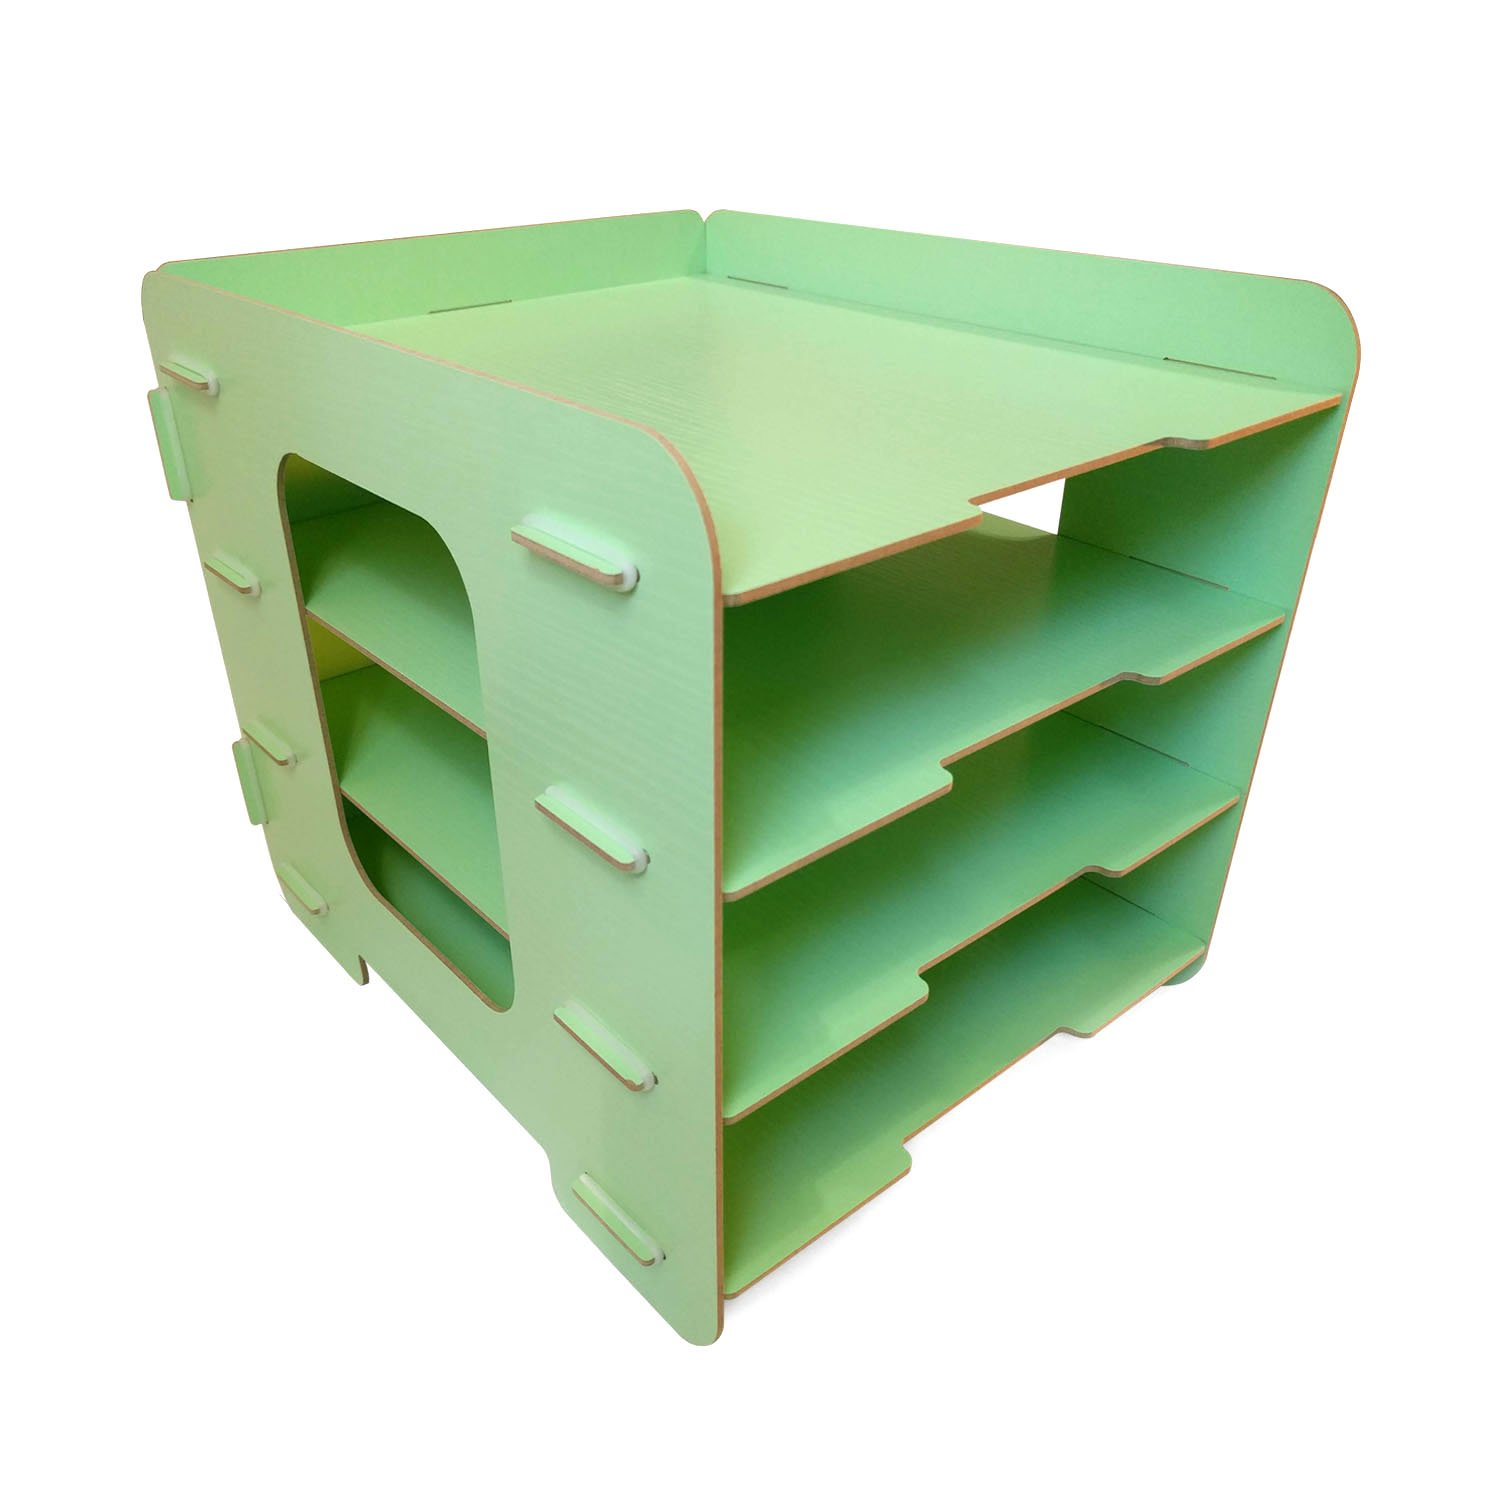 Green Desk Paper Organizer Sturdy Wood Office Letter Tray! Easy Fast Assembly A4 File Sorting 4 Tier